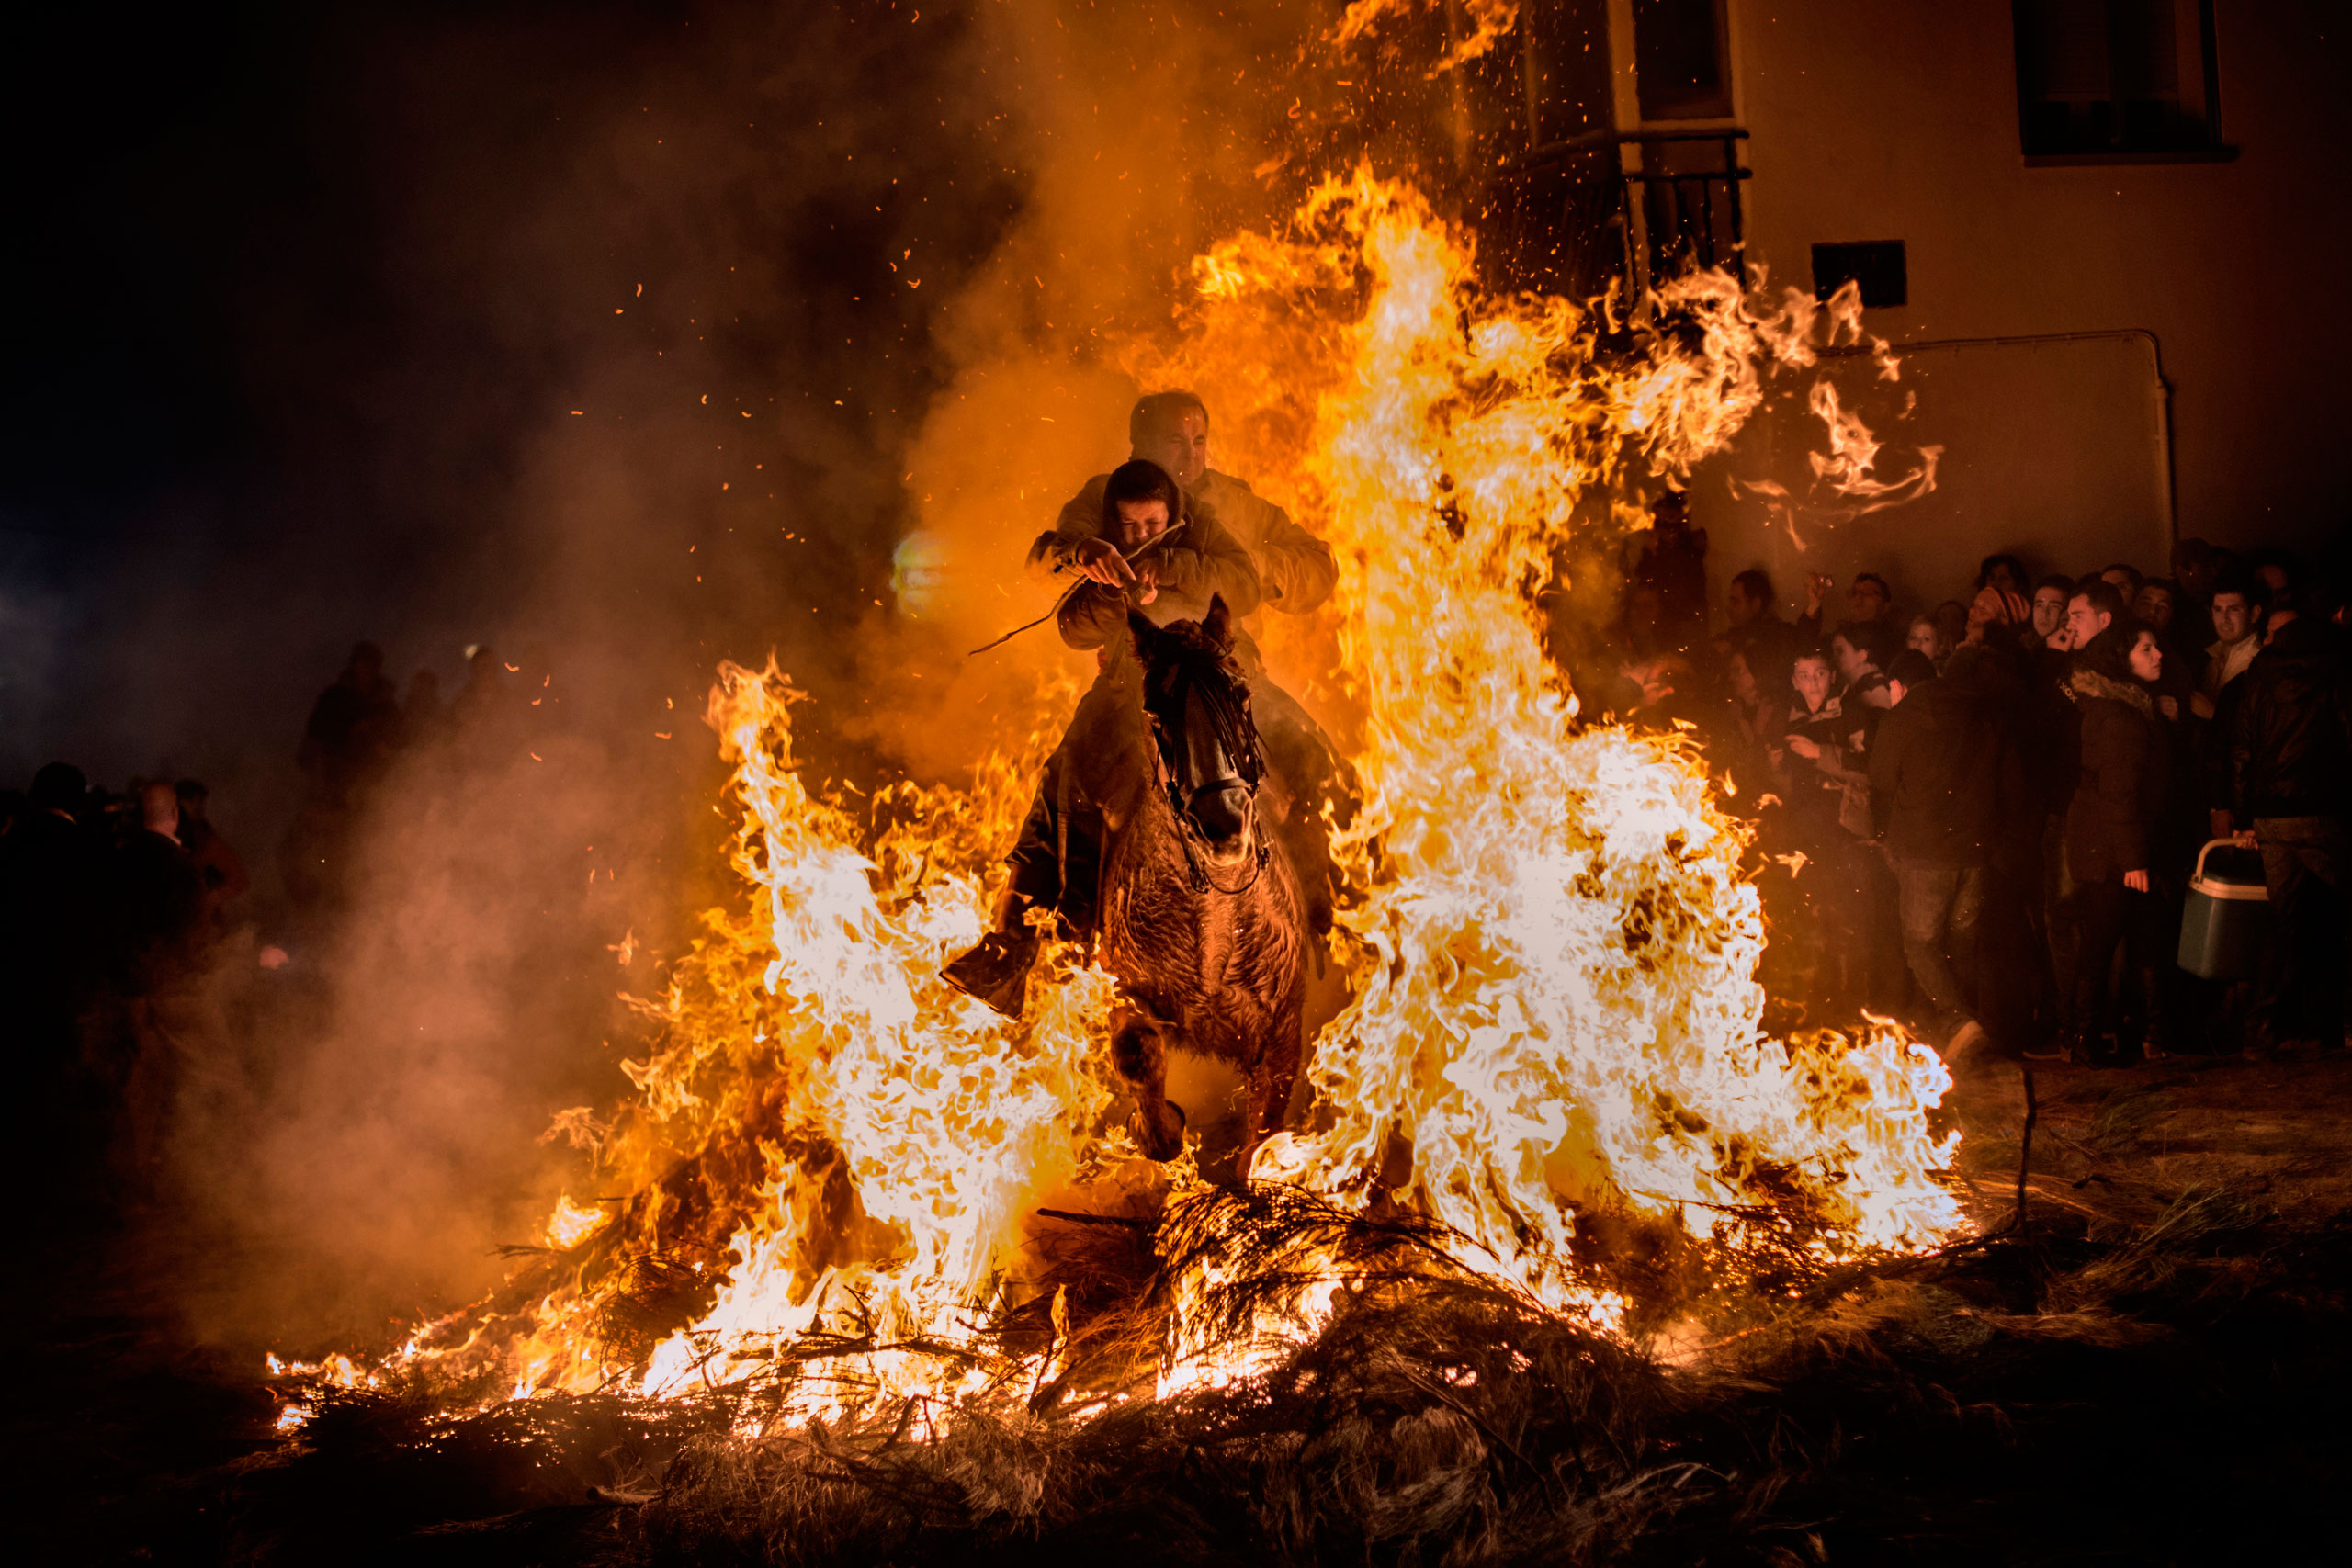 A man rides a horse with a child through the flames during the  Luminarias  annual religious celebration on the night before Saint Anthony's, patron of animals, in the village of San Bartolome de los Pinares, about 62 miles northwest of Madrid, Spain, Jan. 16, 2014. According to tradition that dates back 500 years, people ride their horses through the narrow cobblestone streets of this small village to purify the animals with the smoke of the bonfires.